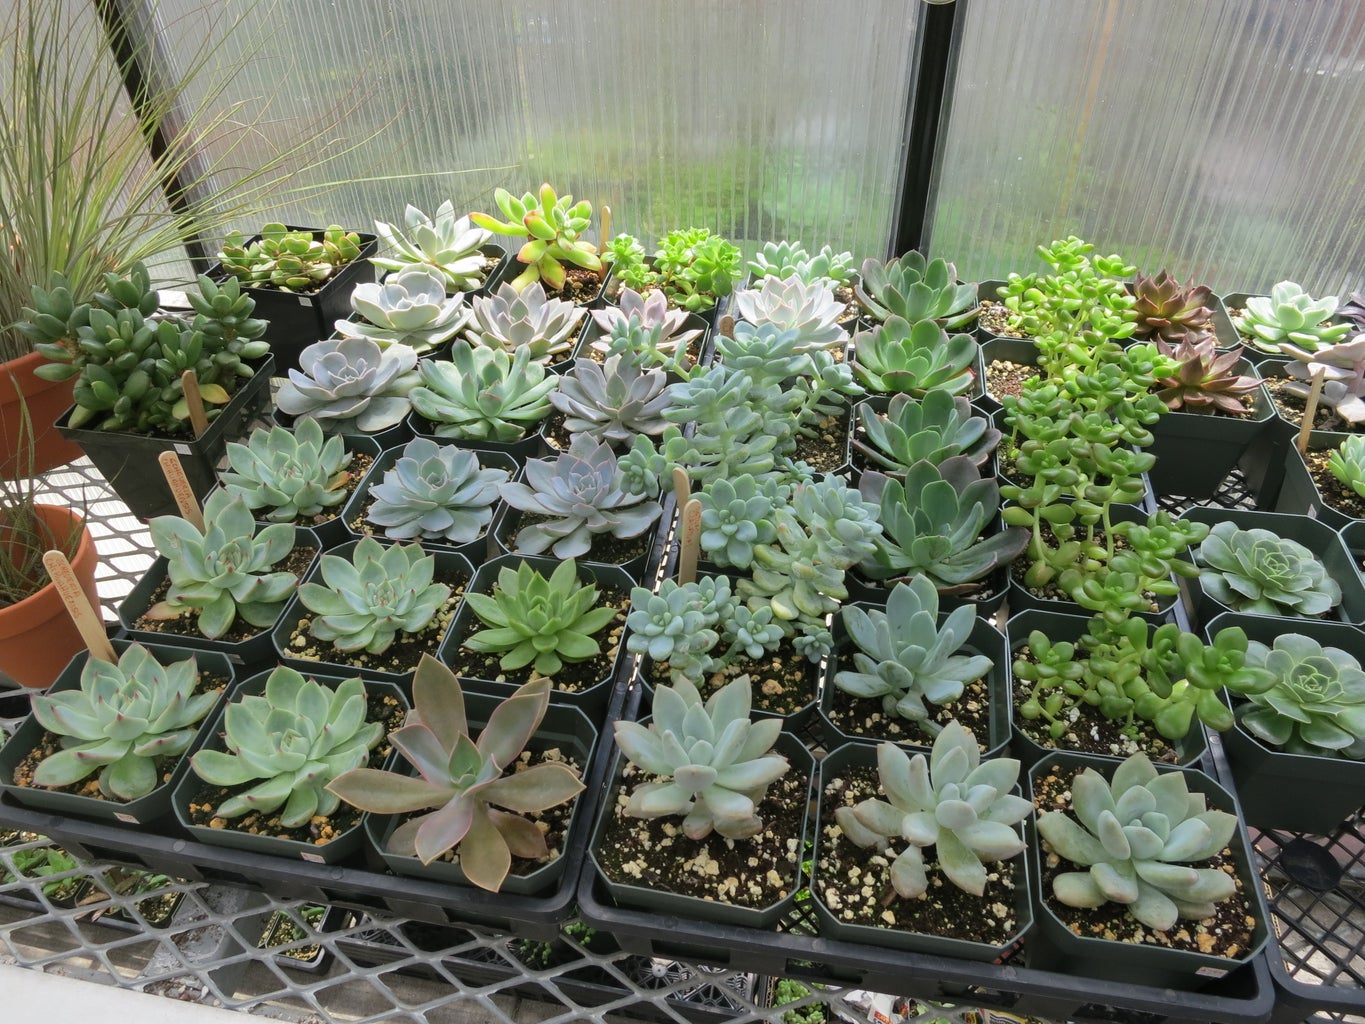 Succulent Display From Thrift Store Finds